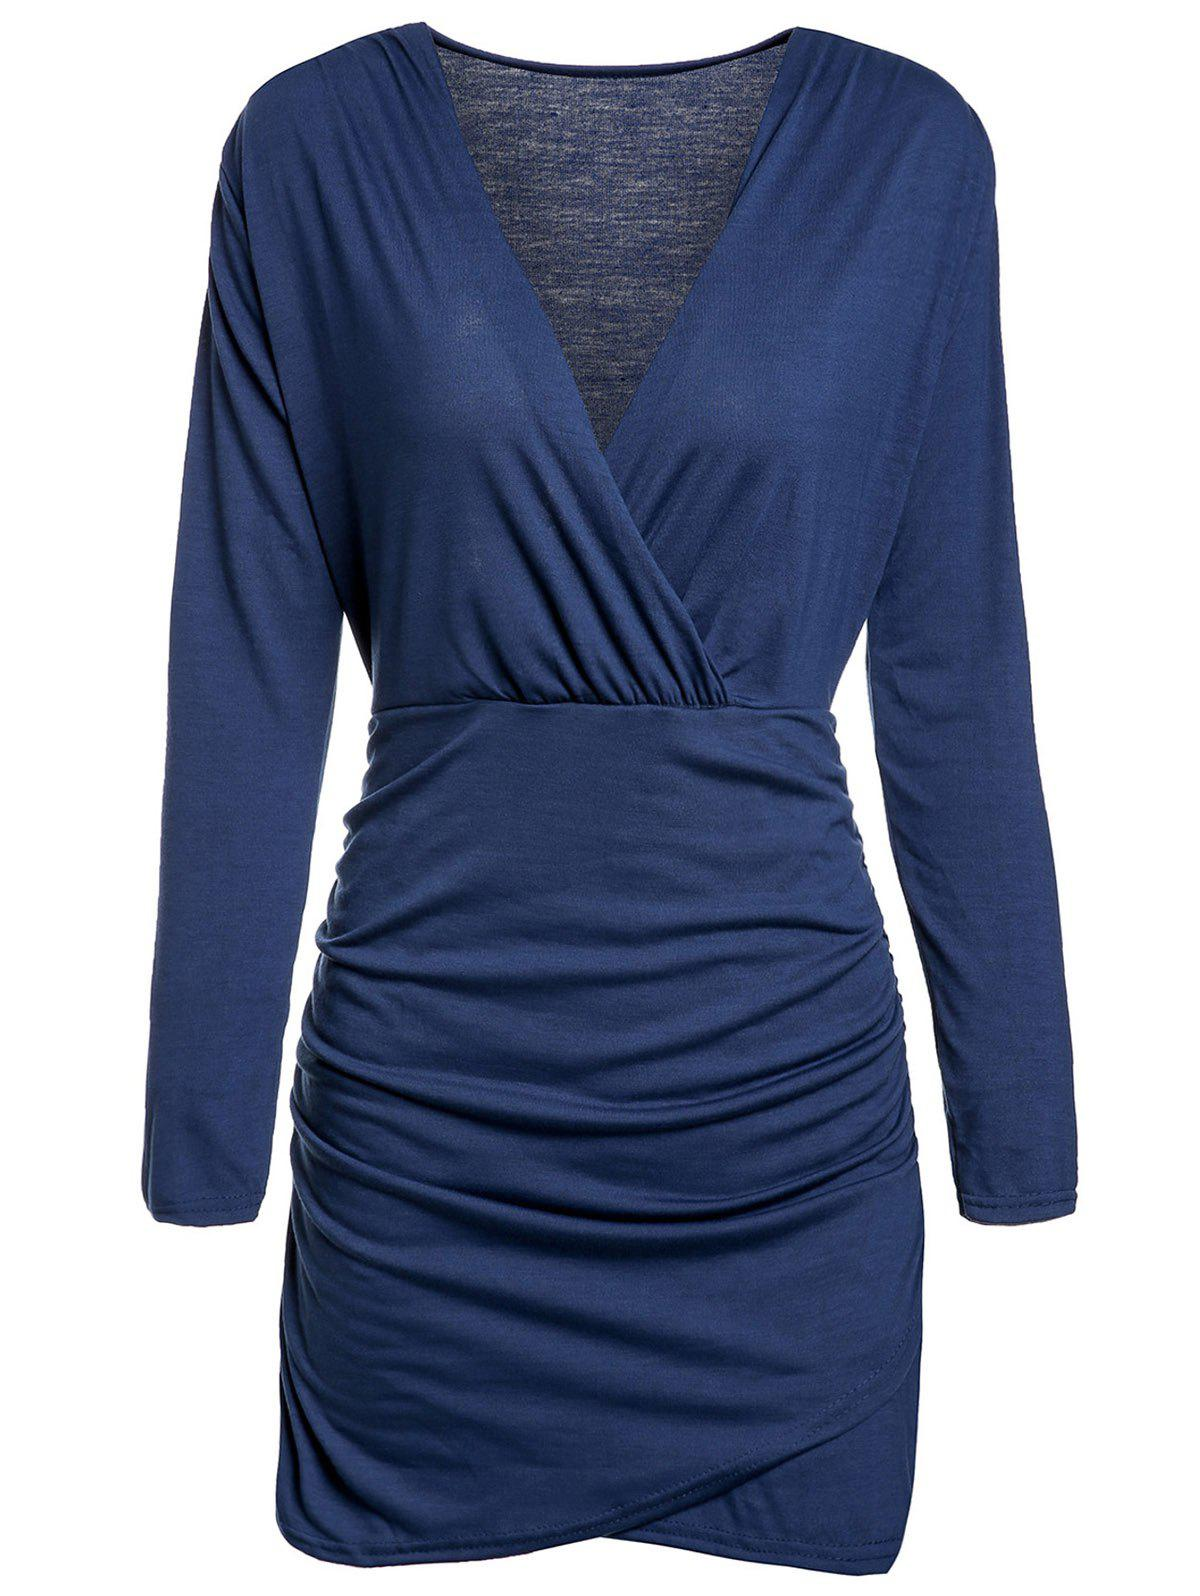 Alluring Plunging Neck Long Sleeve Ruffled Solid Color Women's Dress - BLUE S